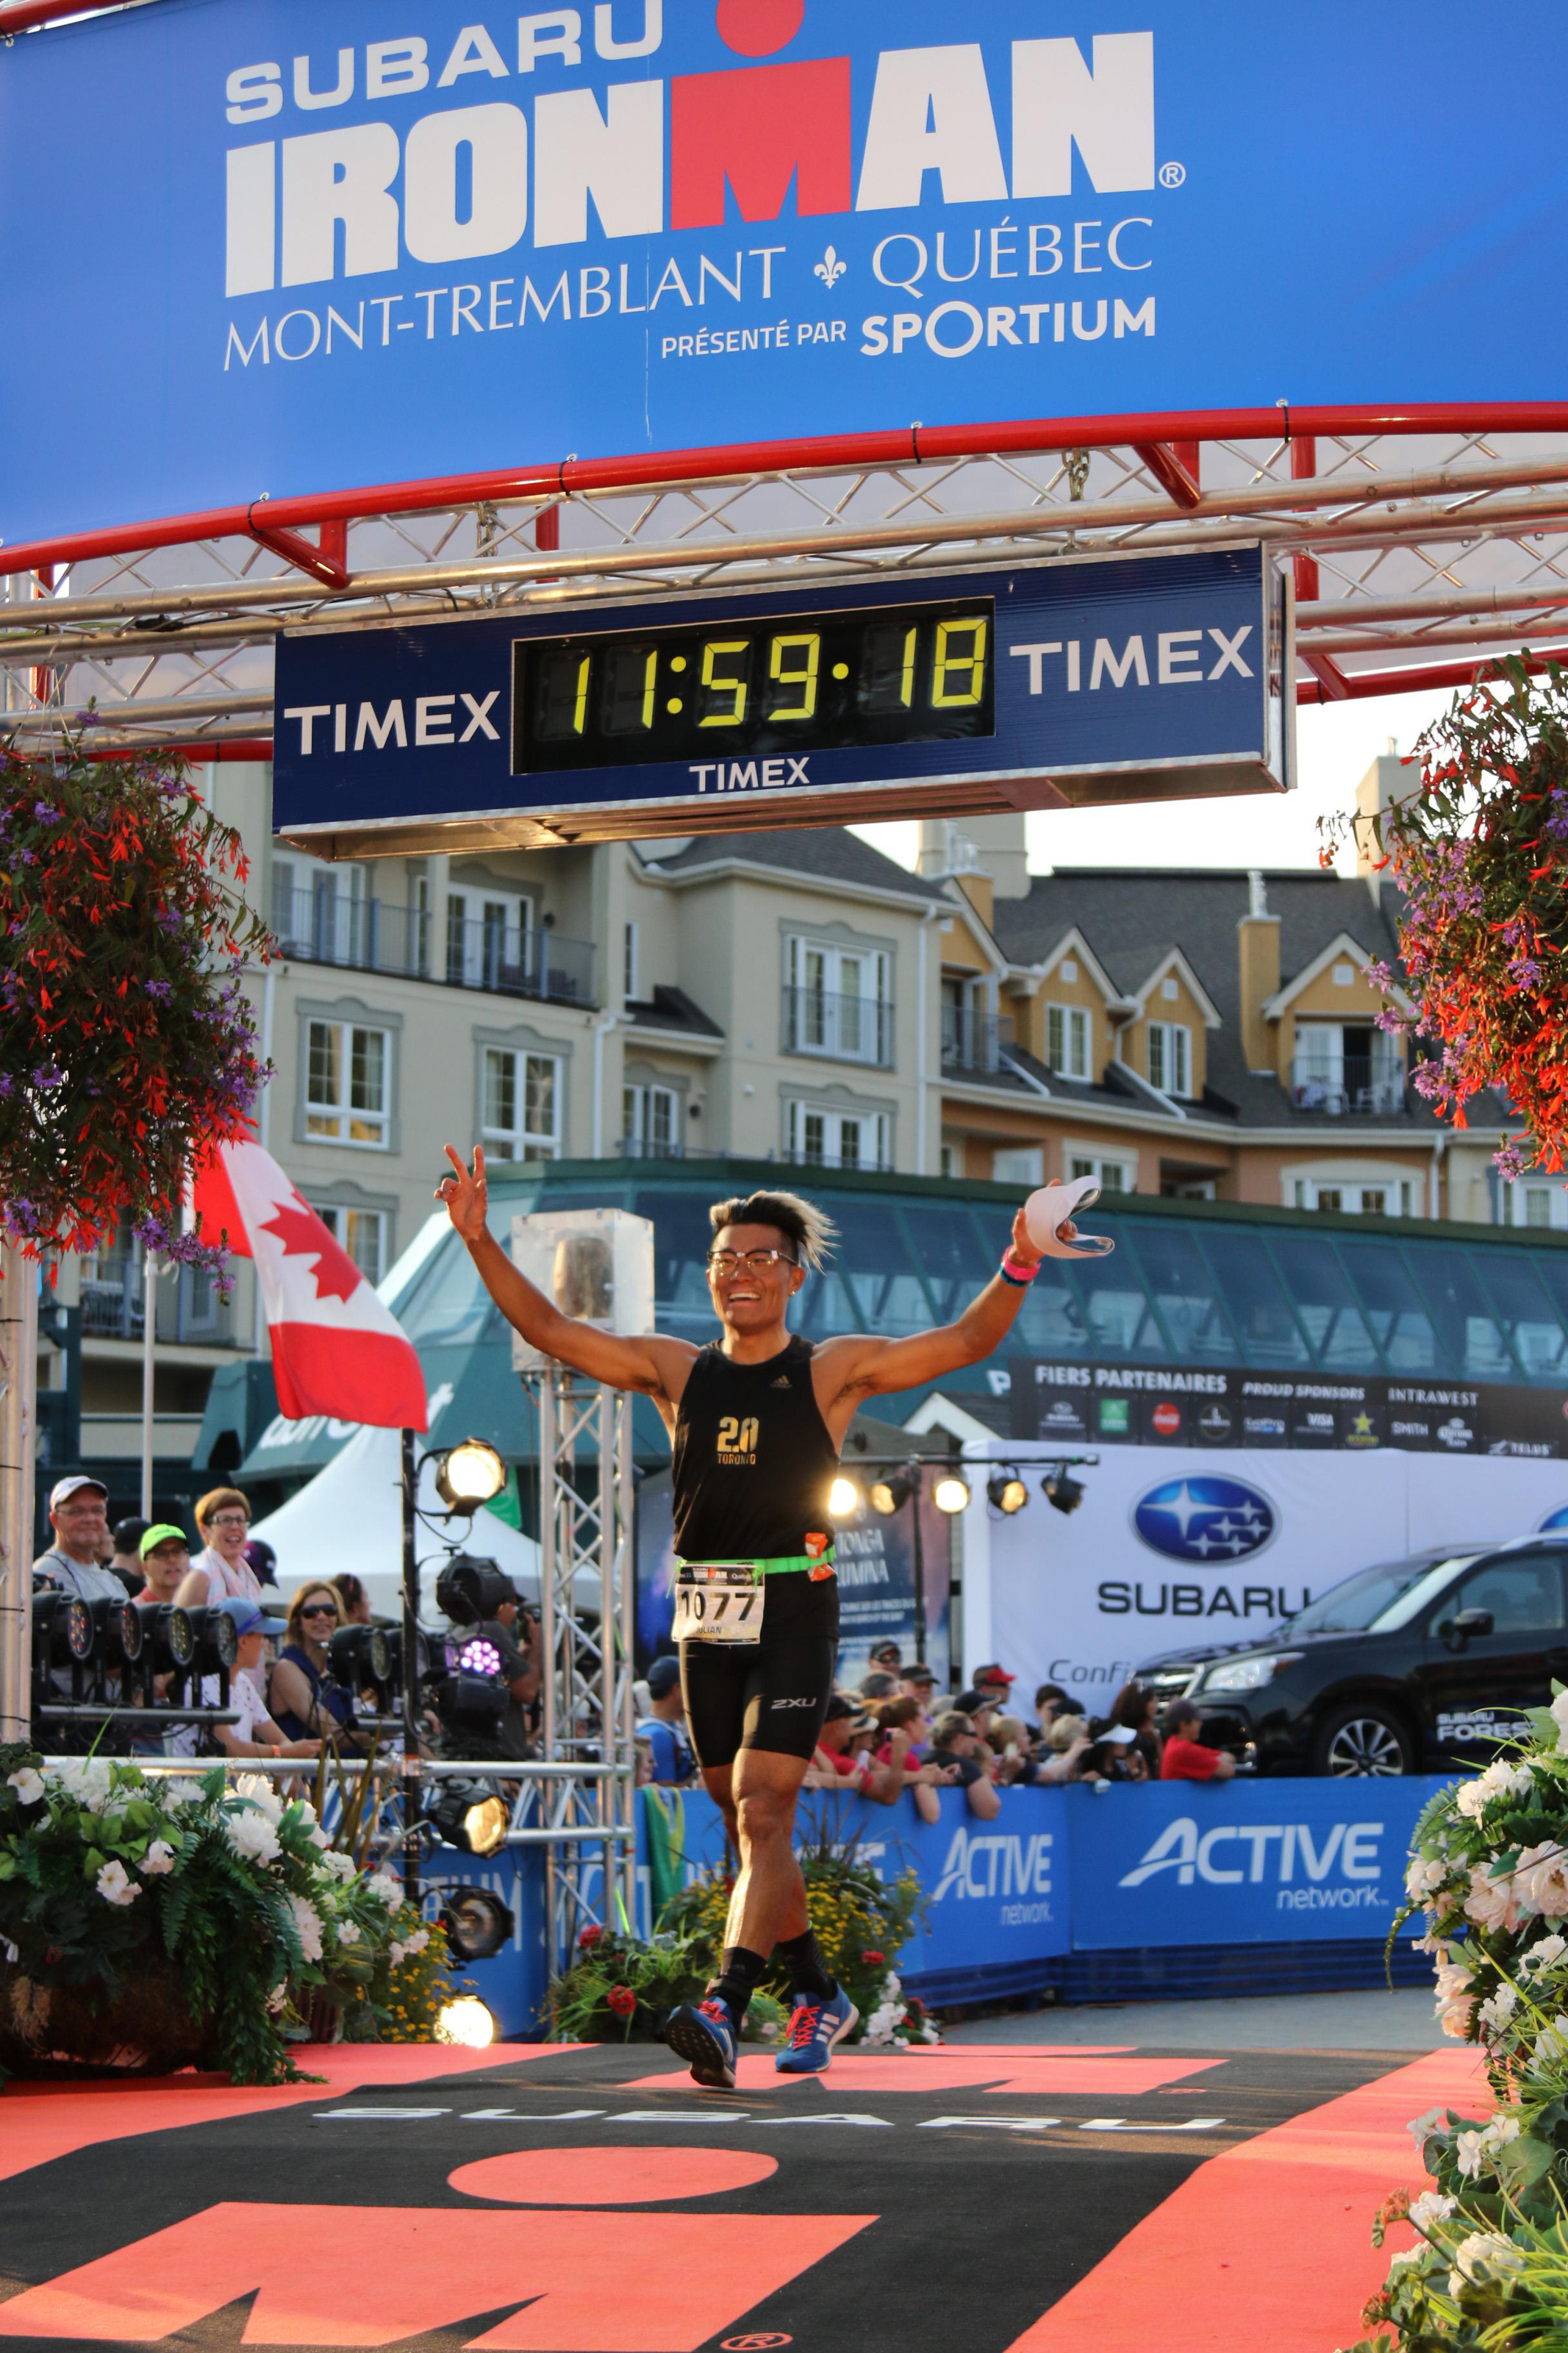 Swim 3.8km, Bike 180km, Run 42.2km. Completed my first Full Ironman in Mont Tremblant on Sunday, August 20th, in a time of 11 hours and 36 minutes. Ranked 407 out of 1937 racers.